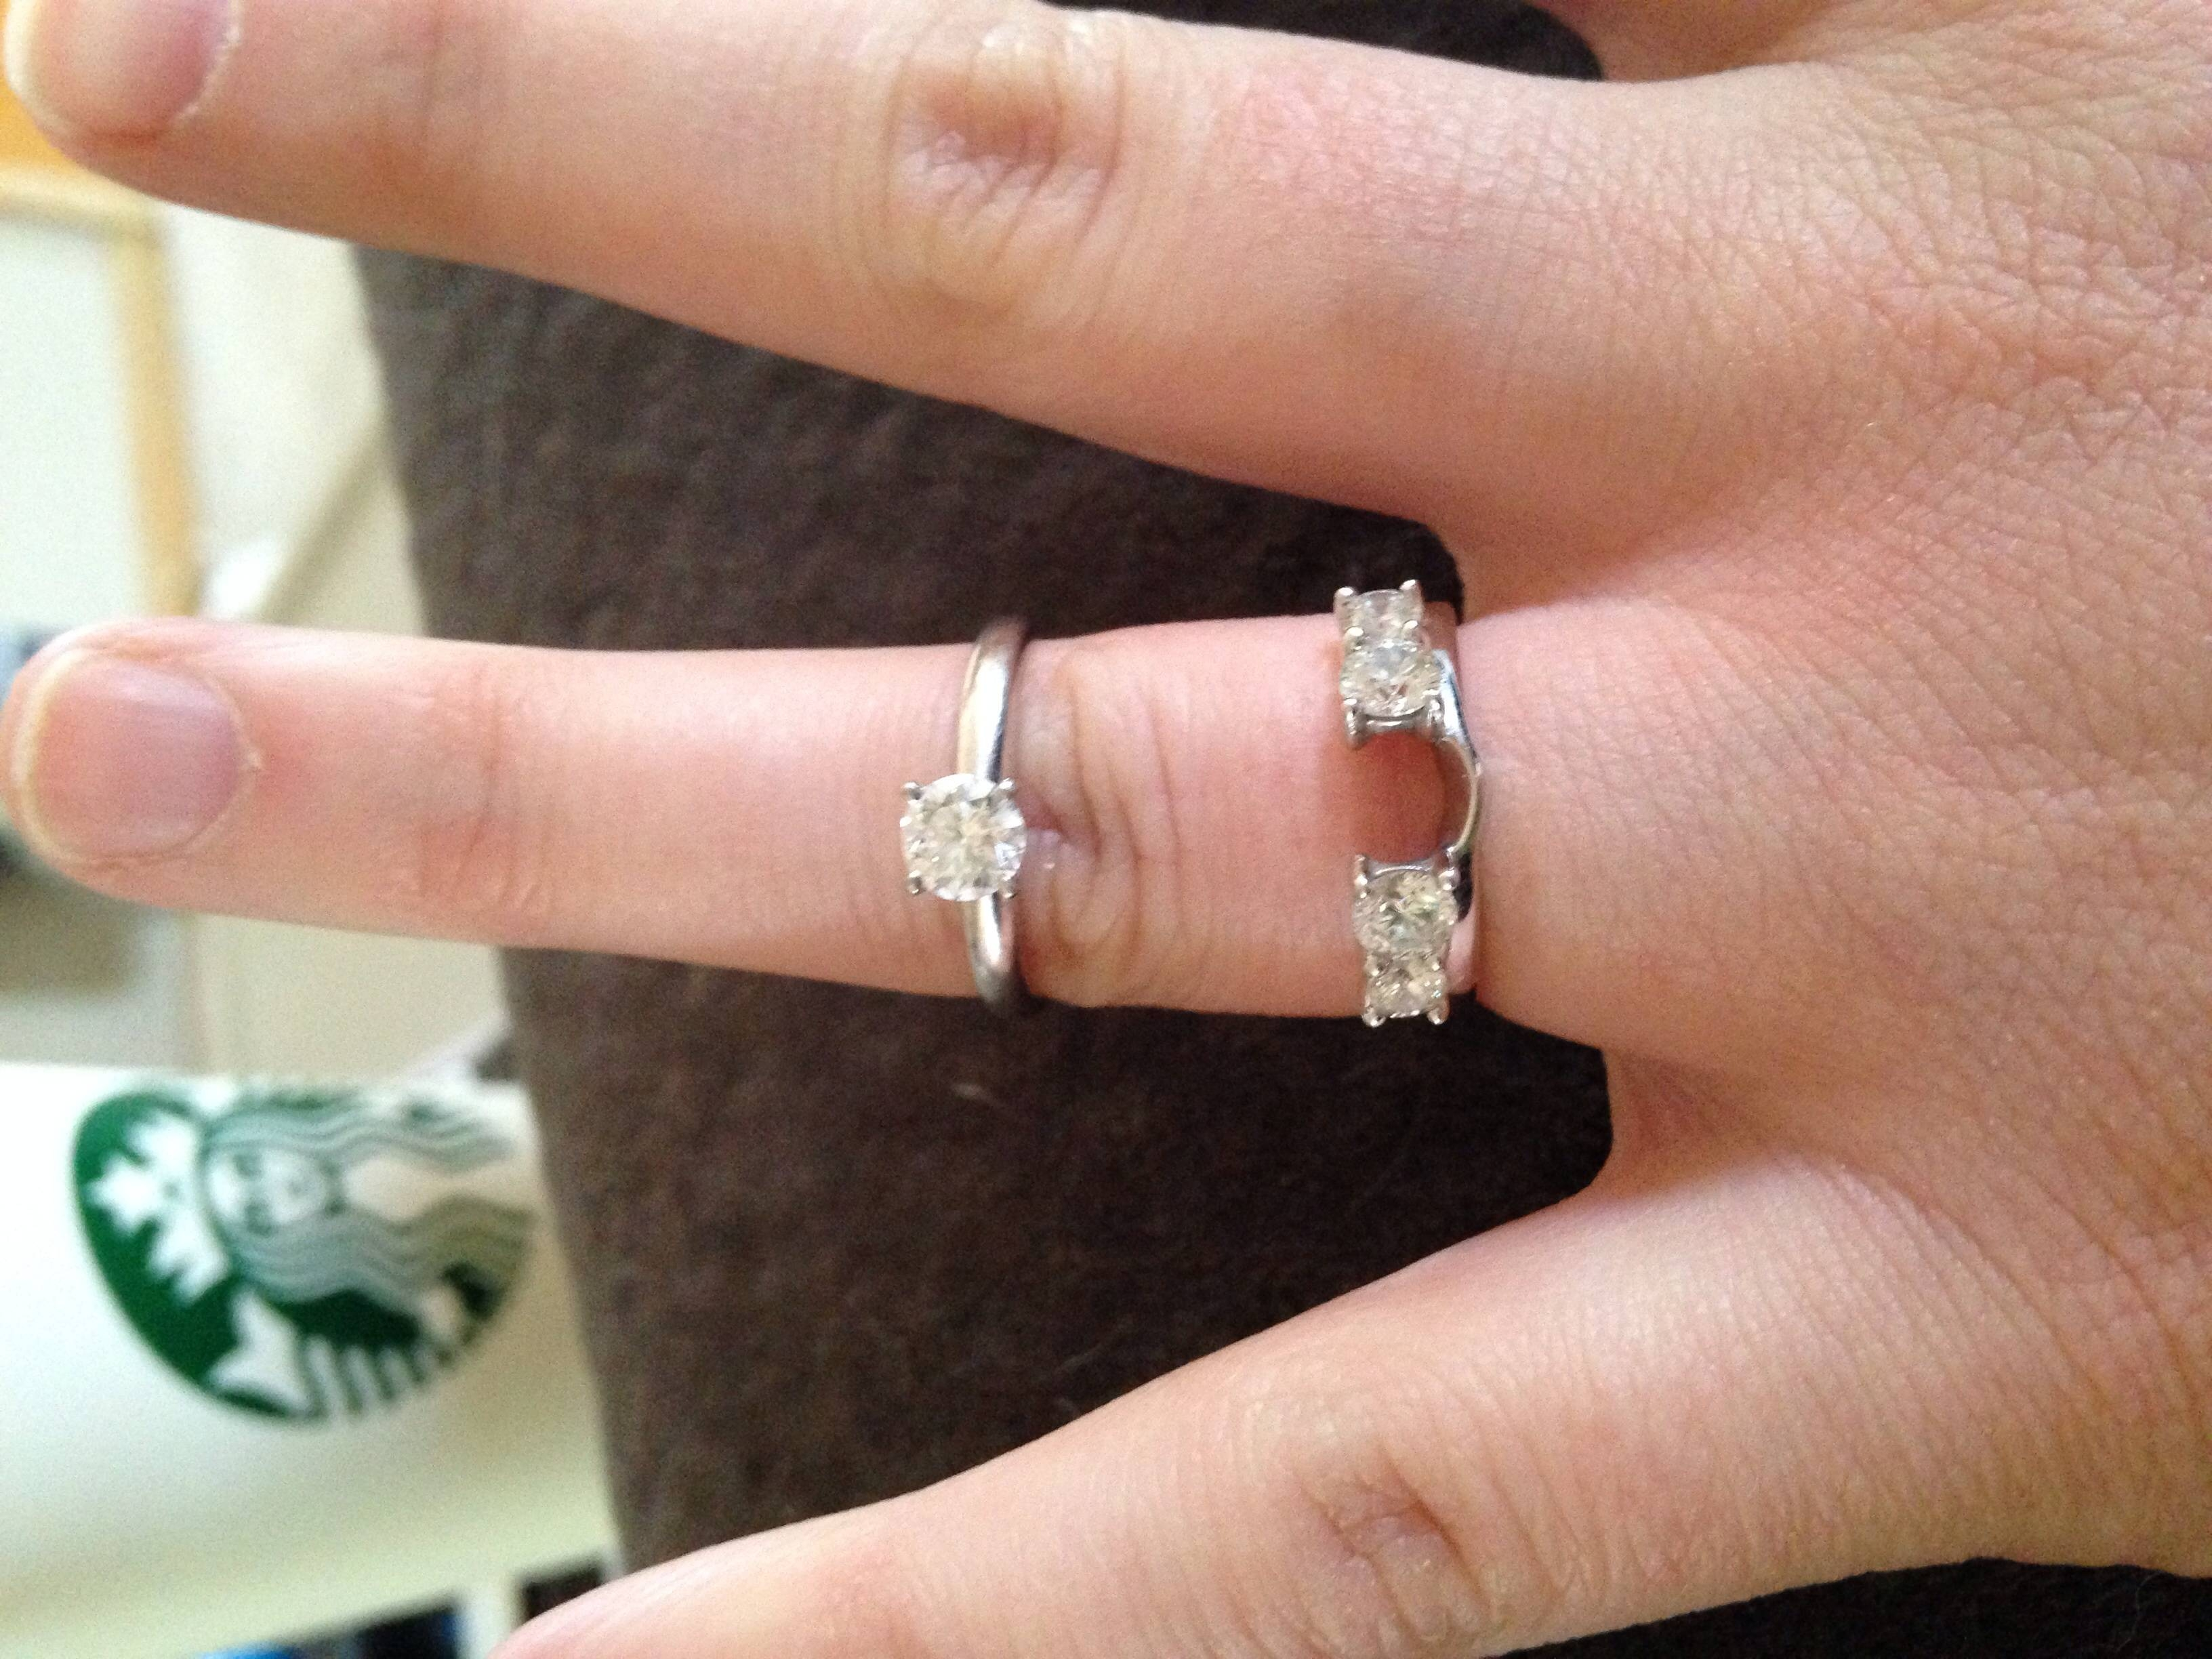 Show Us Your Wedding Band For Solitaire Engagement Rings! – Weddingbee With Latest Solitaire Engagement Rings With Wedding Bands (View 14 of 15)